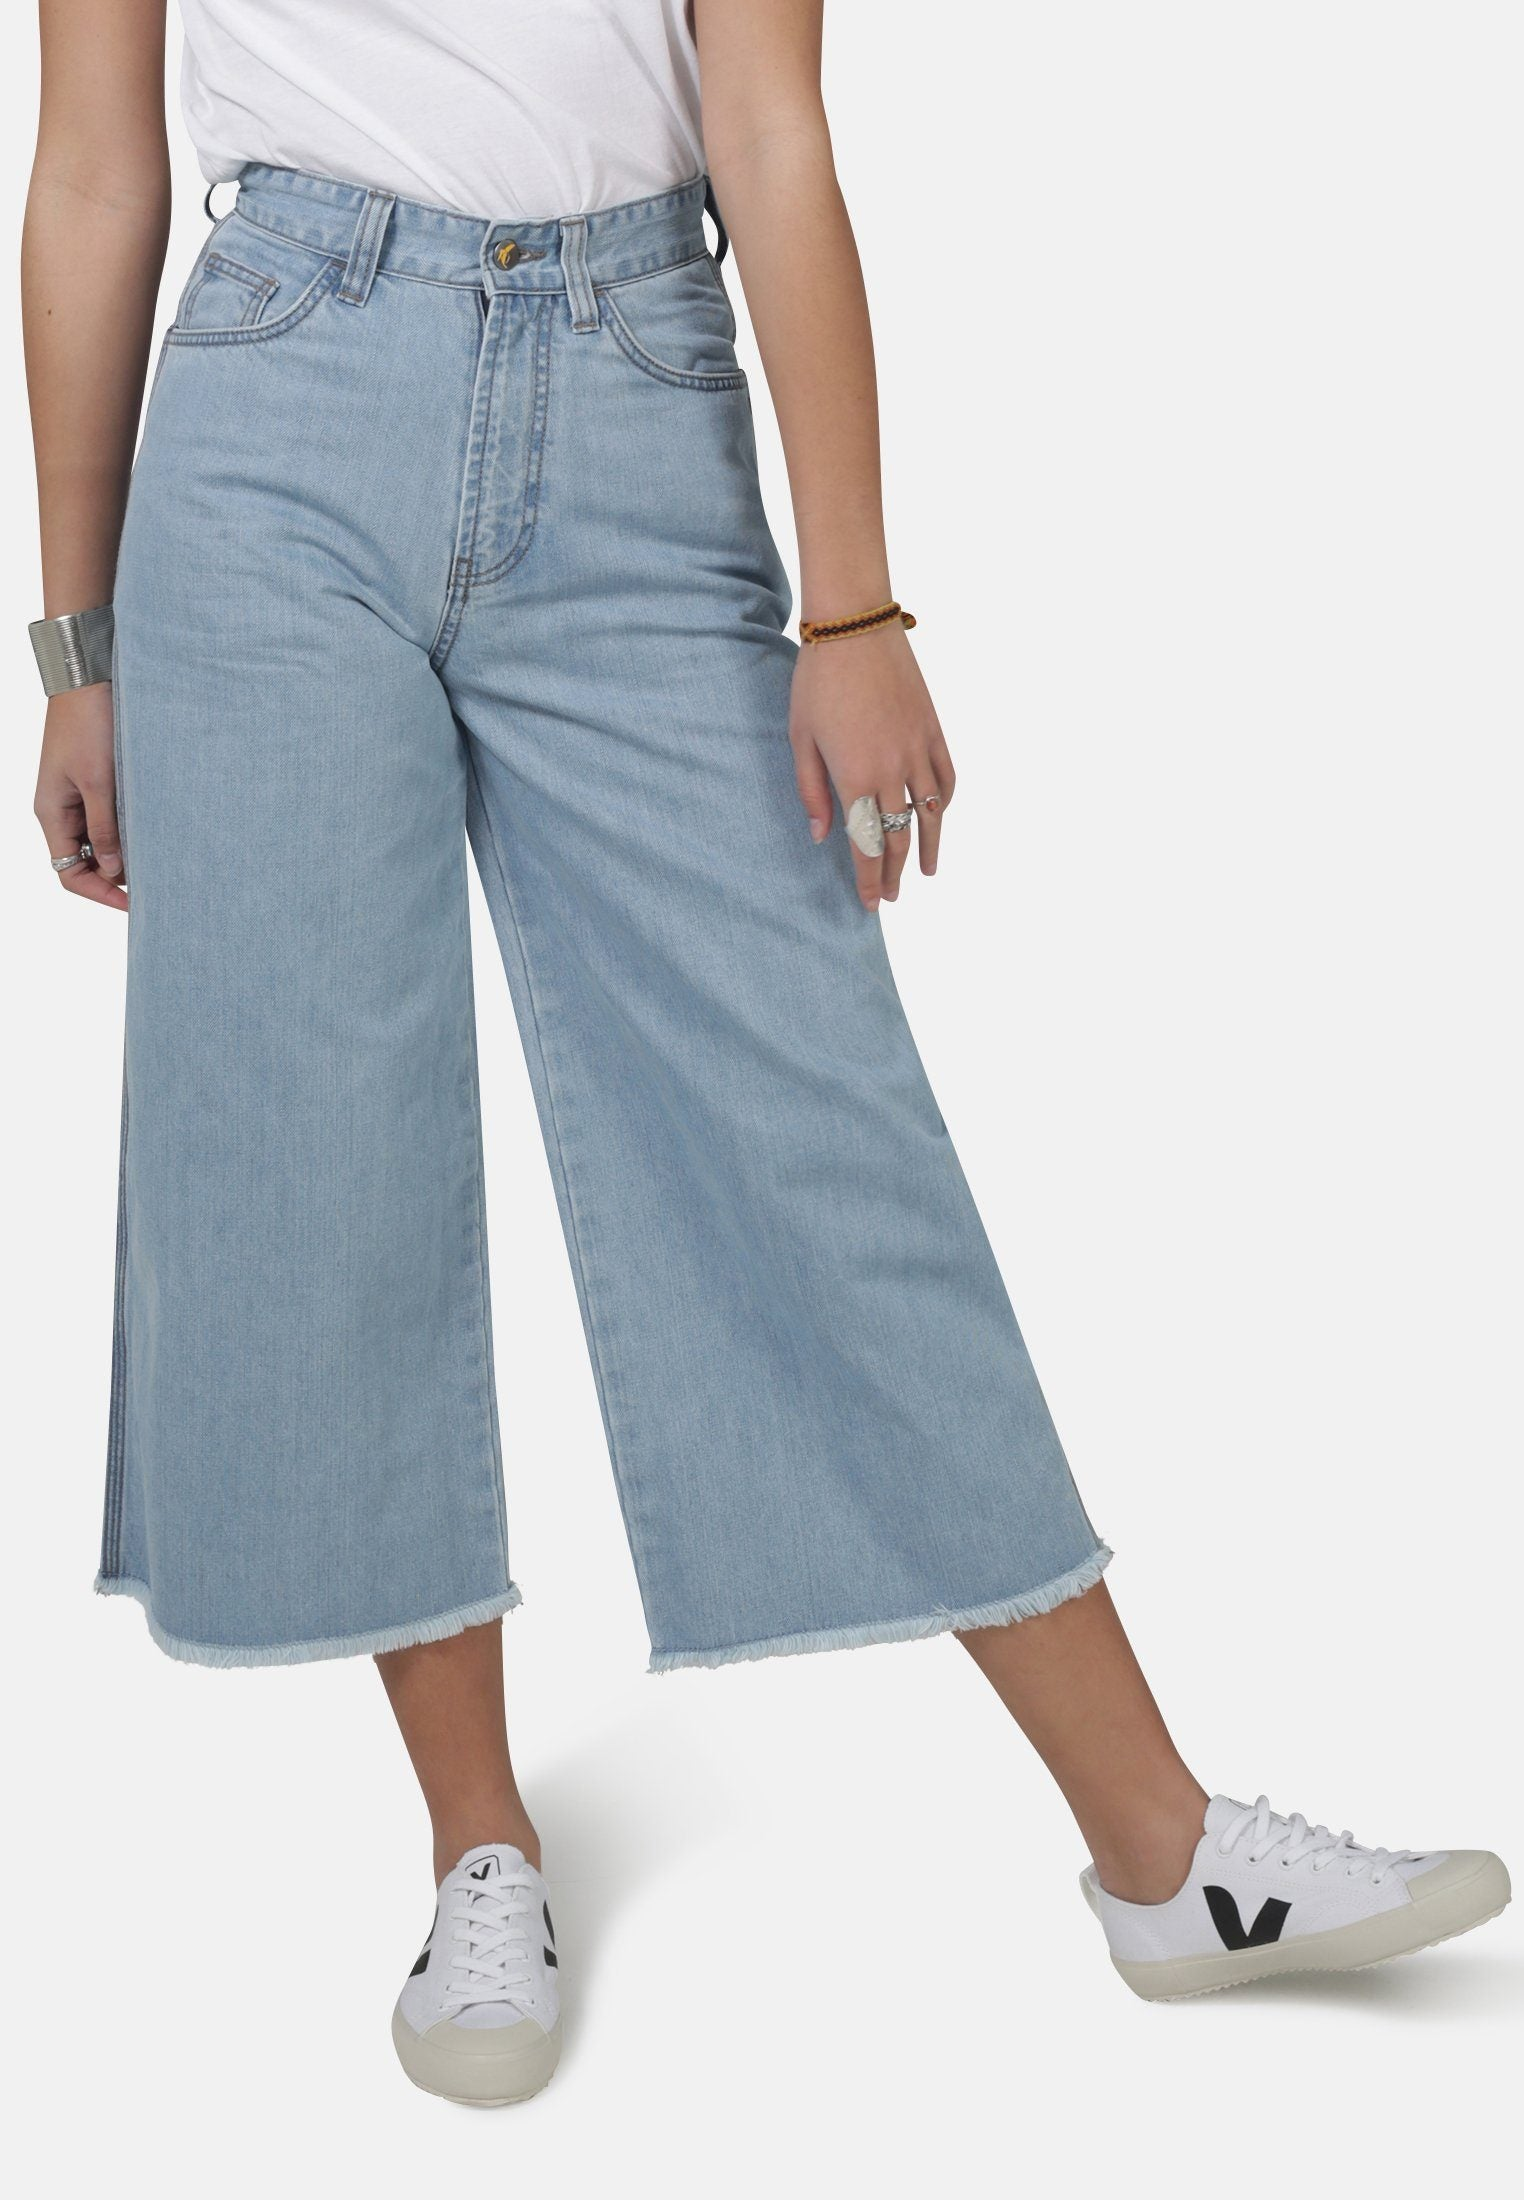 Skate Cropped Light Vintage Organic Cotton Jeans - Komodo Fashion